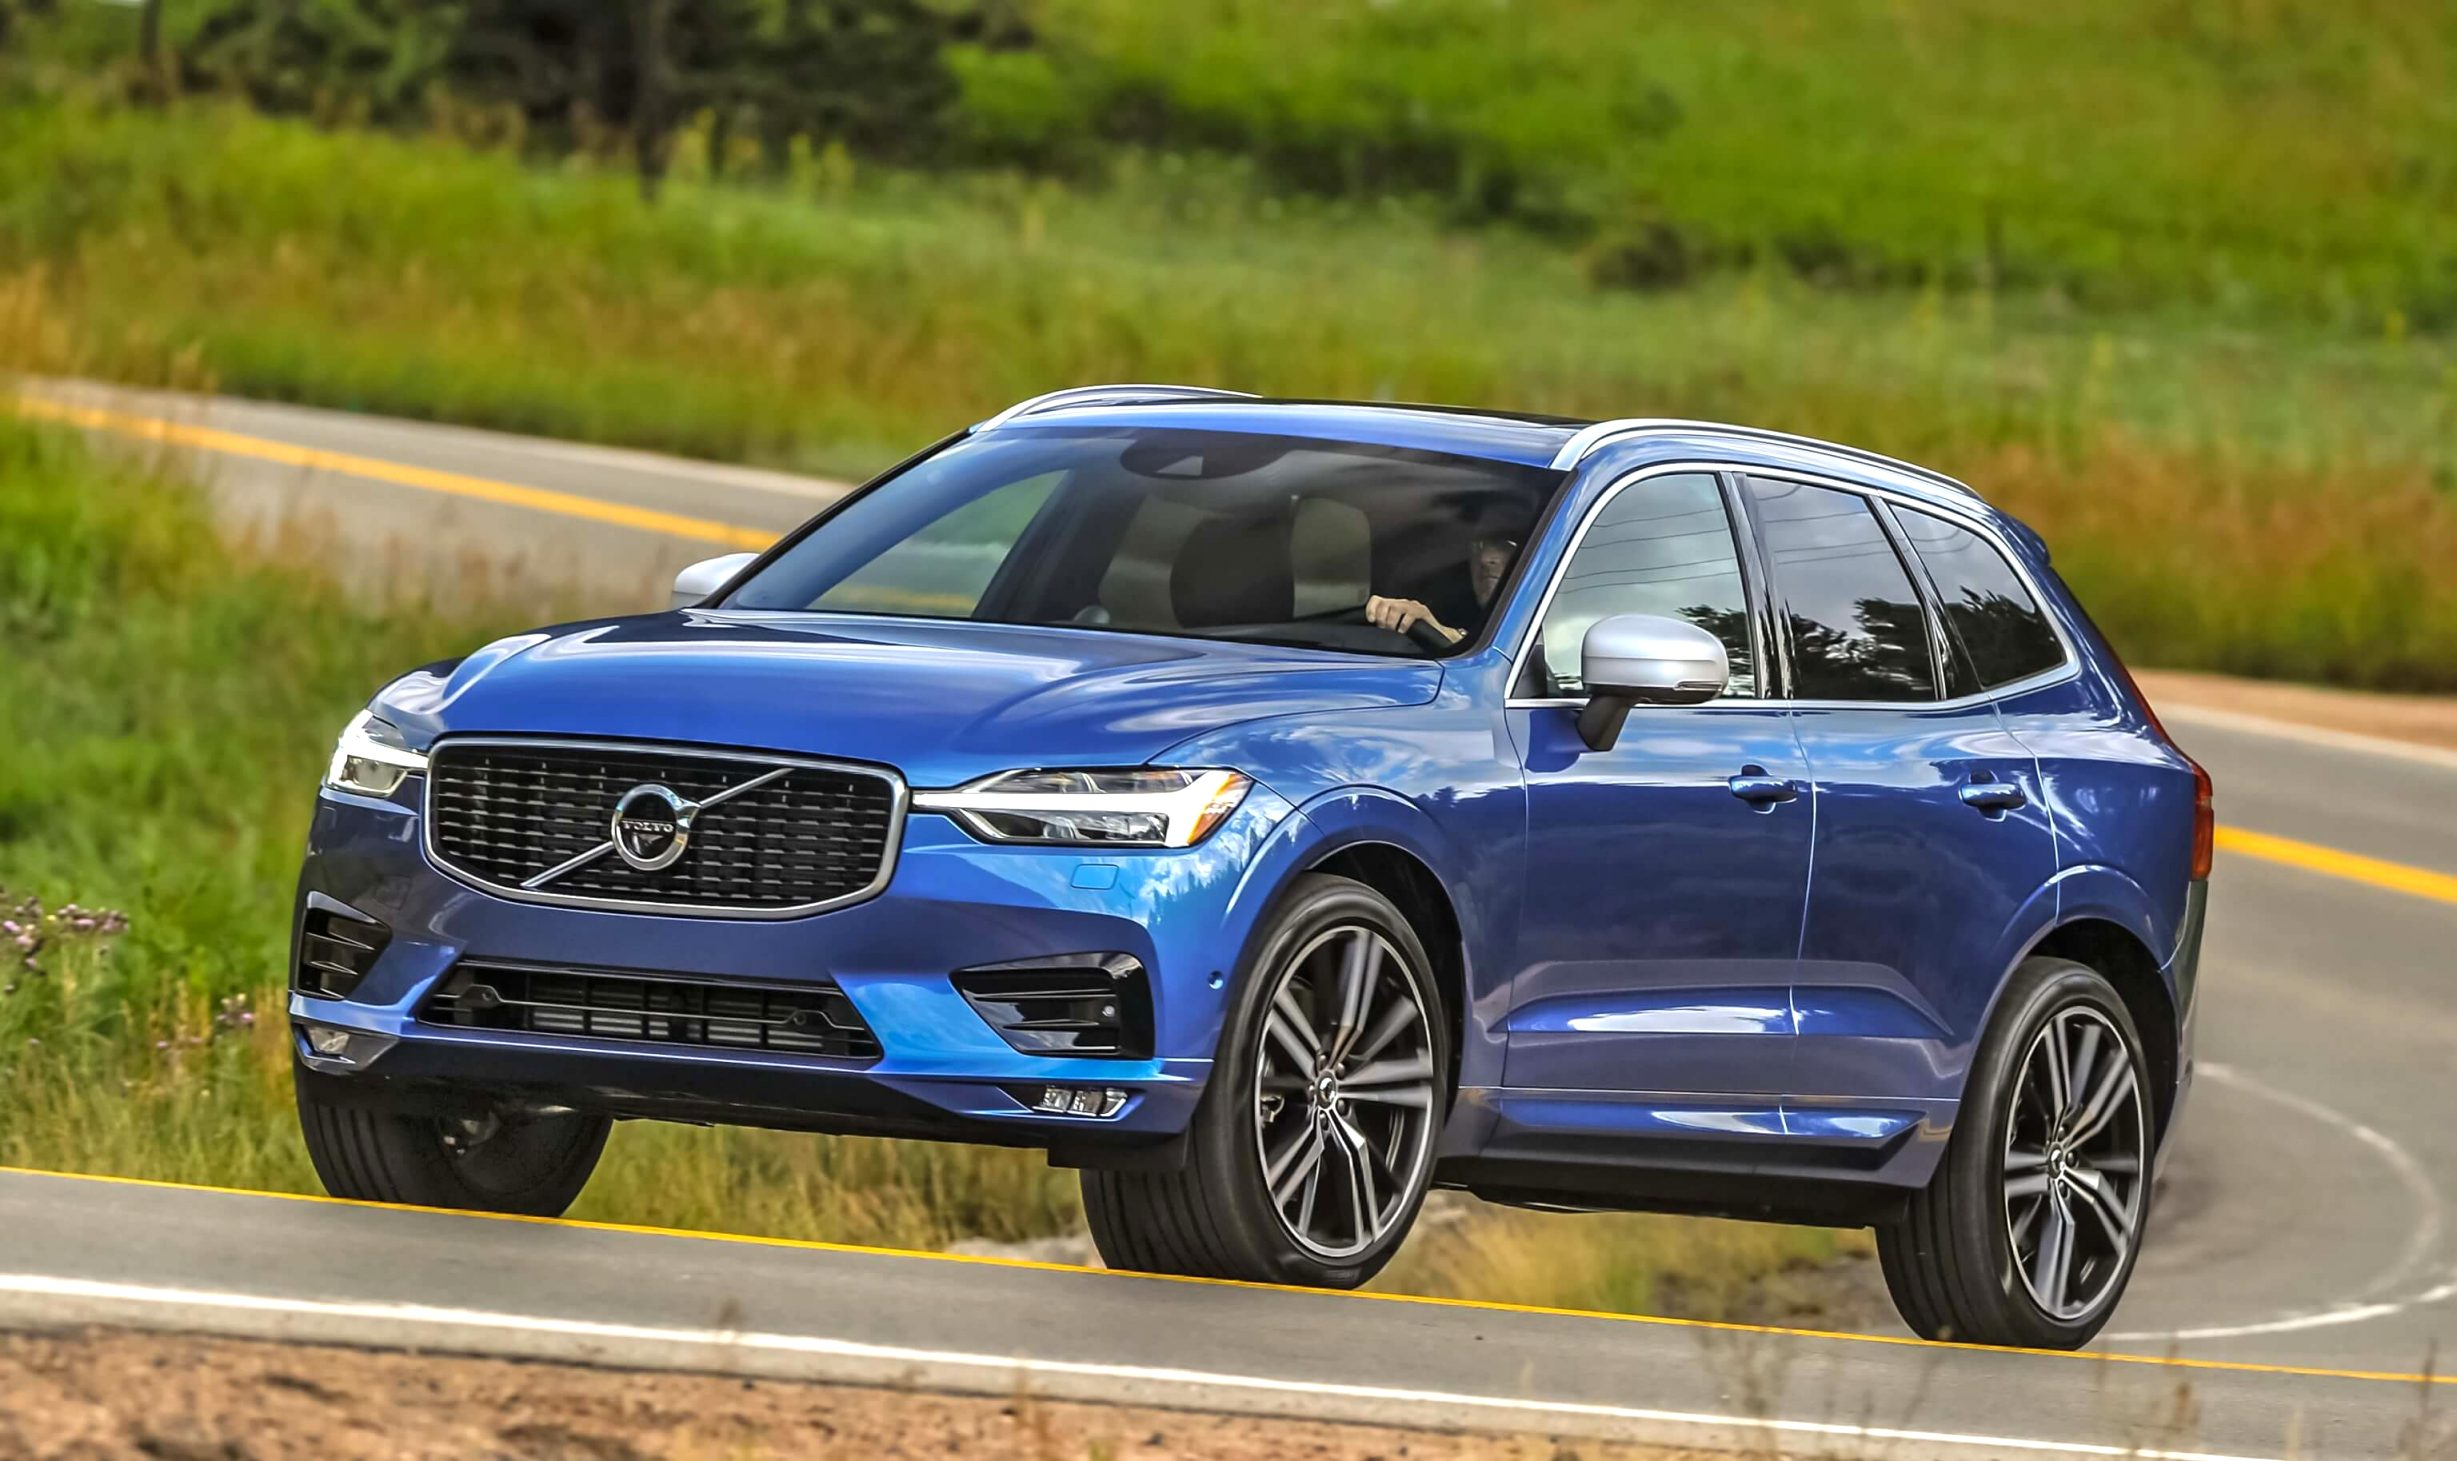 2021 volvo r design xc60 Review and Release date